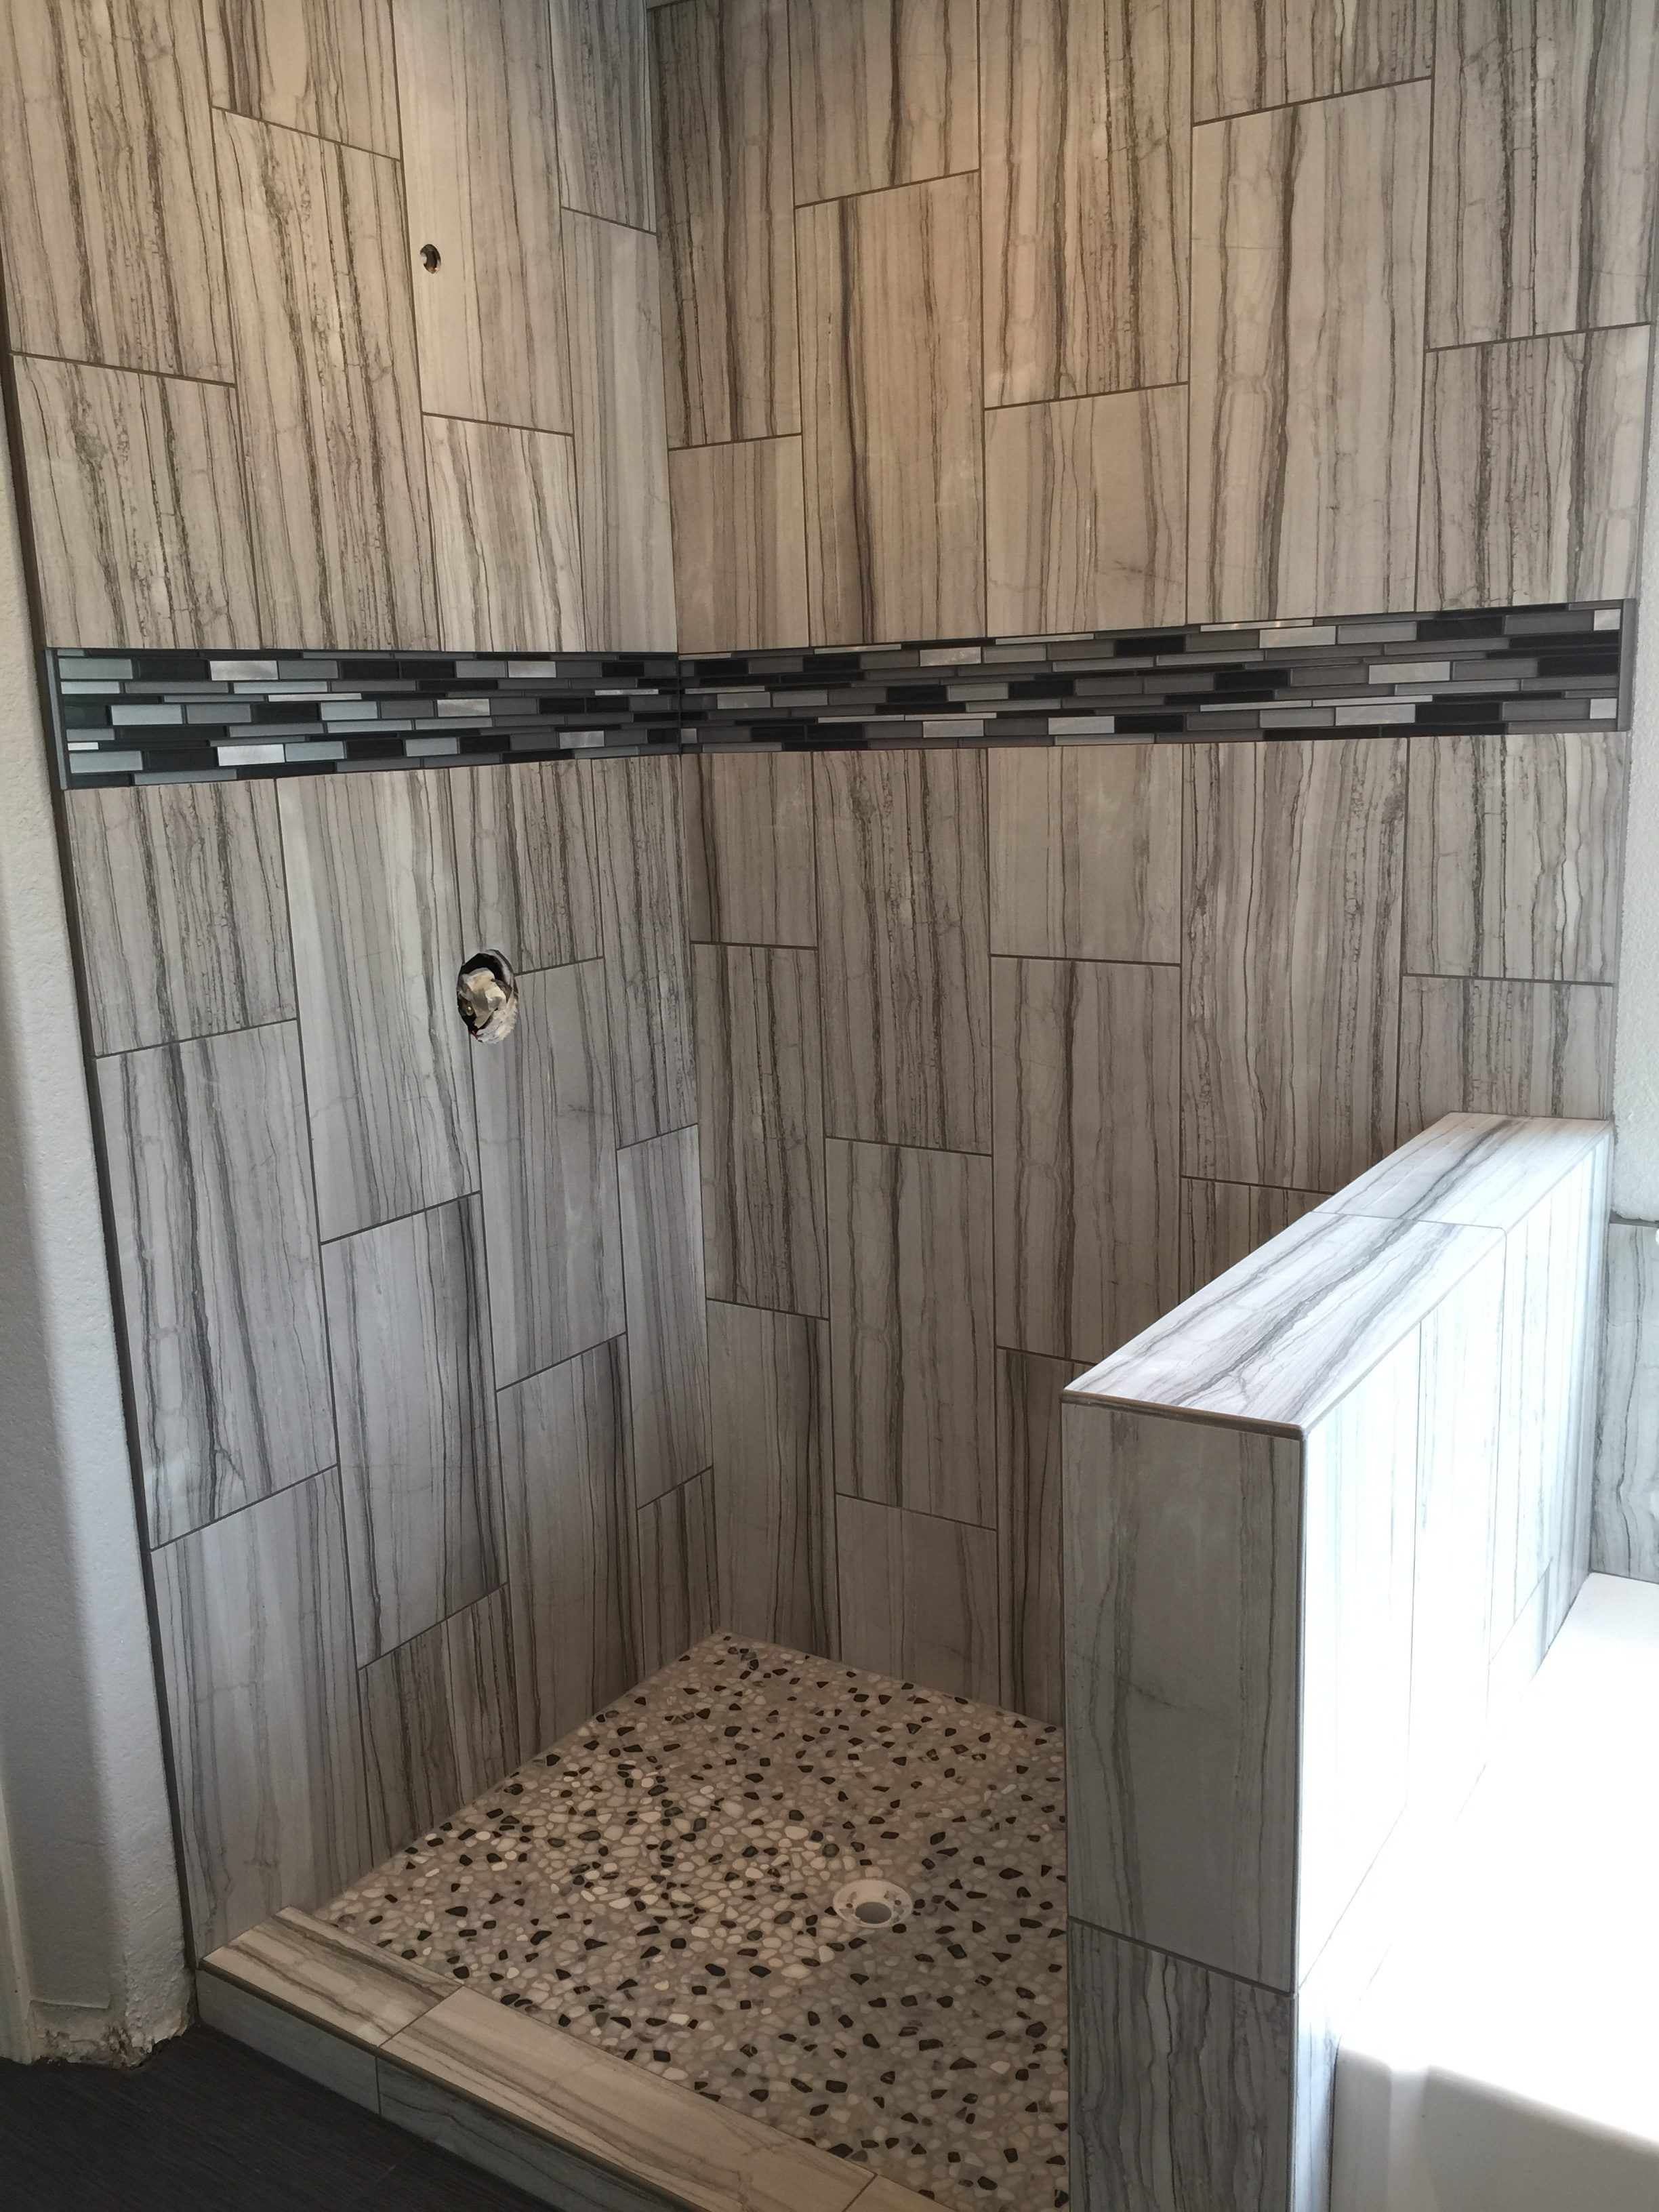 Shower wall tile progress during remodel in Tracy